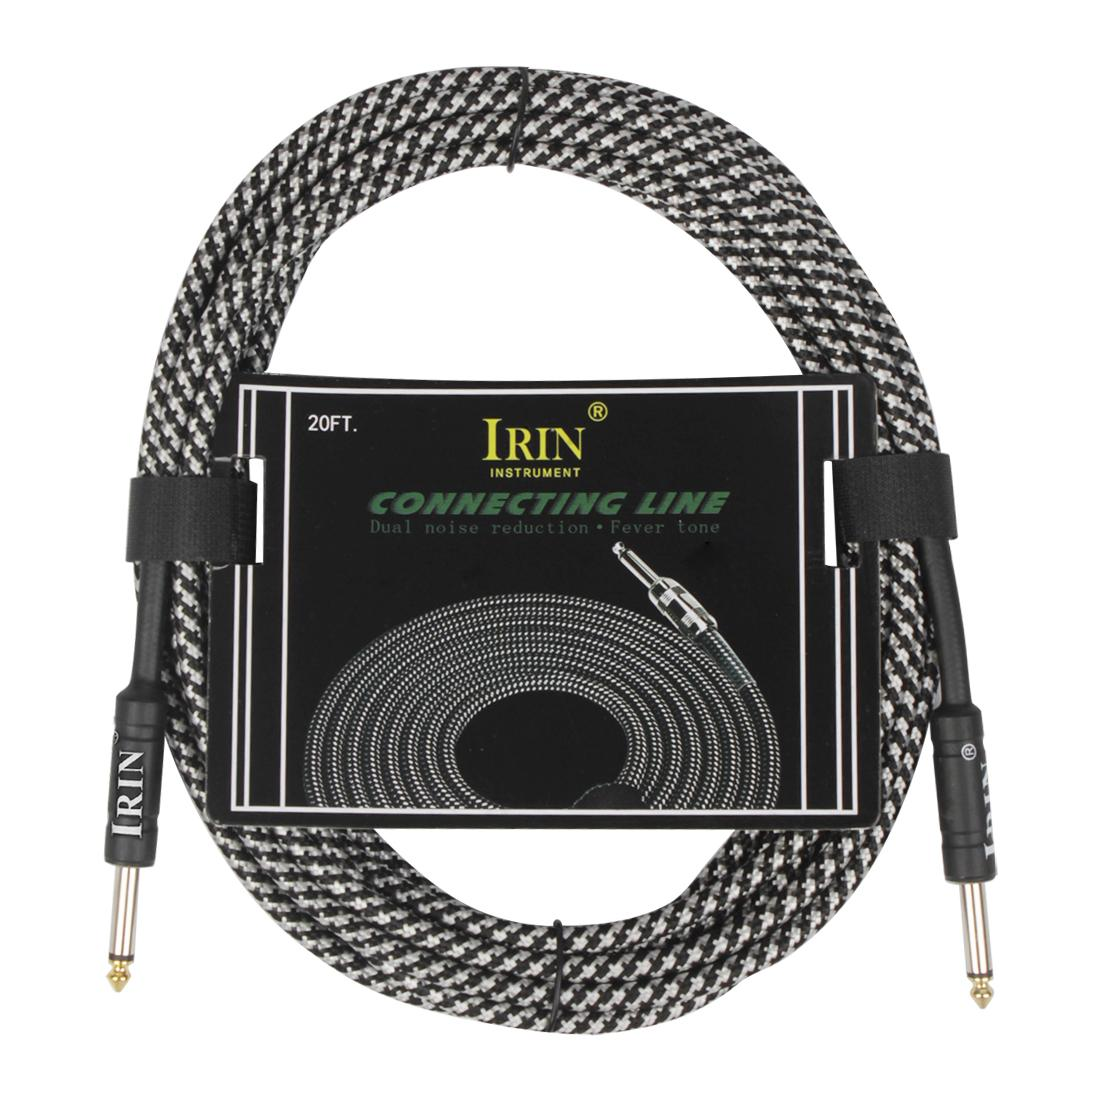 6M Cable Guitar Connecting Line Musical Instrument Accessories